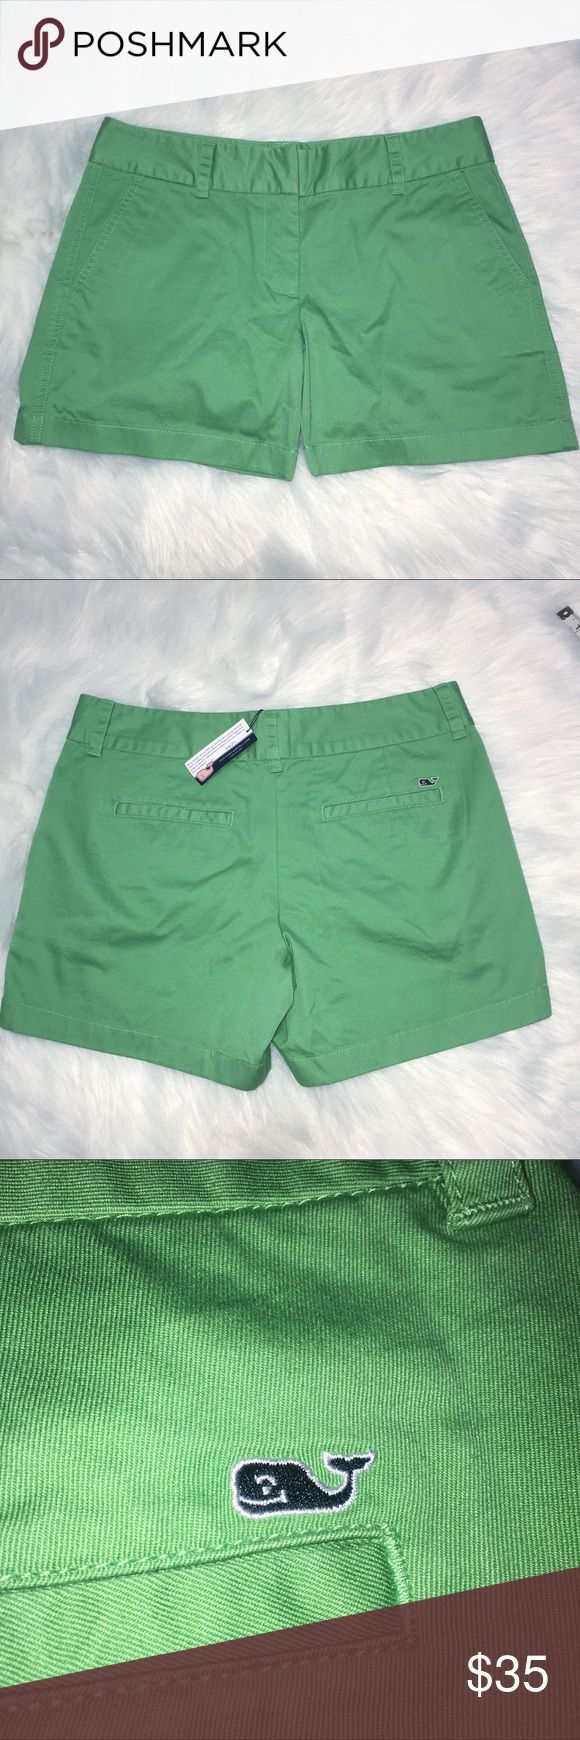 """Vineyard Vines Green Classic Twill Shorts. Size 6. Classic twill shorts by Vineyard Vines. Size 6.  Color is called Lucky.  ·100% cotton-twill ·Garment-washed for softness ·Front slash pockets ·Back welt pockets ·Inside waistband """"Every day should feel this good"""" stamp ·Embroidered whale on back pocket ·Hook & bar closure ·Approximate Measurements:  Waist Flat Across-15"""", Hips Flat Across-19"""", Inseam-Just under 5"""", Front Rise-8.5"""", Back Rise-13.5"""". ·New with tags. They do have markings on…"""